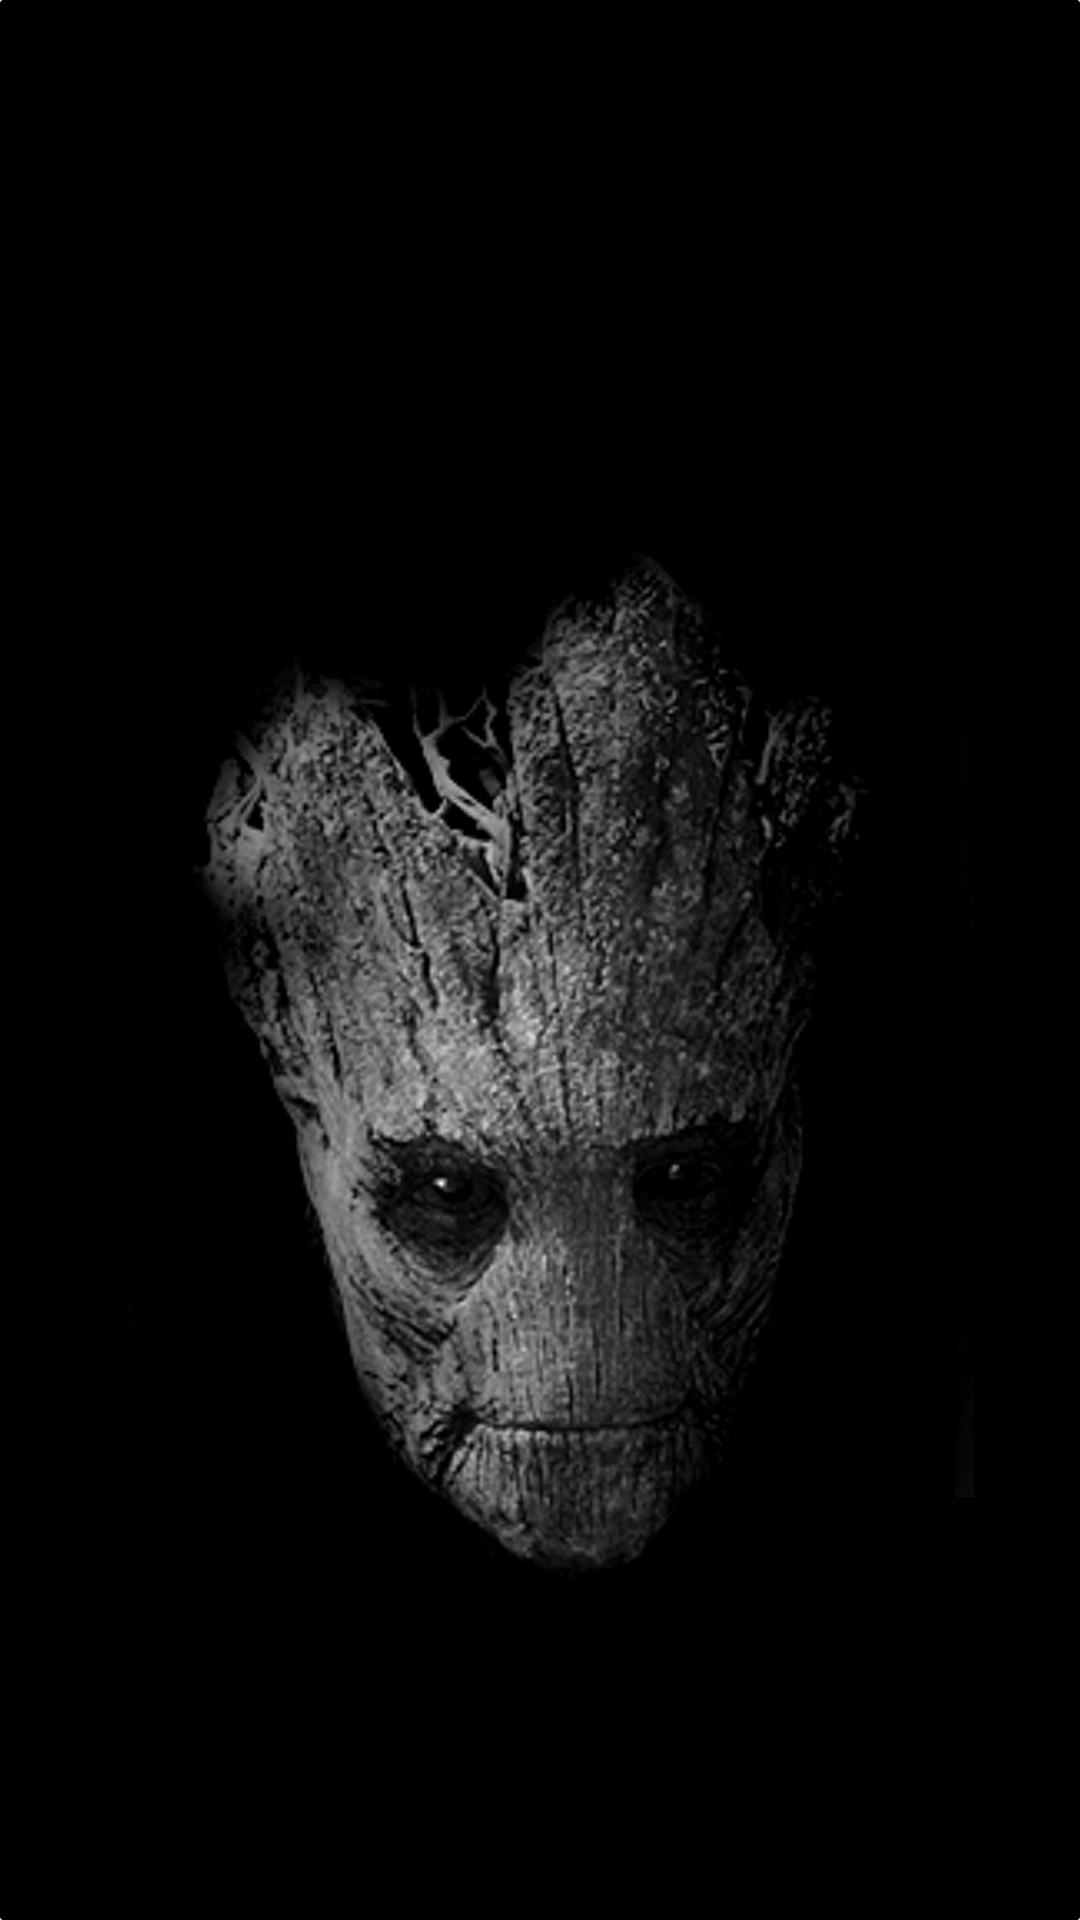 Wallpaper iphone live photo - Download Iphone 6 Live Wallpaper Iphone 6 Plus Groot Wallpaper